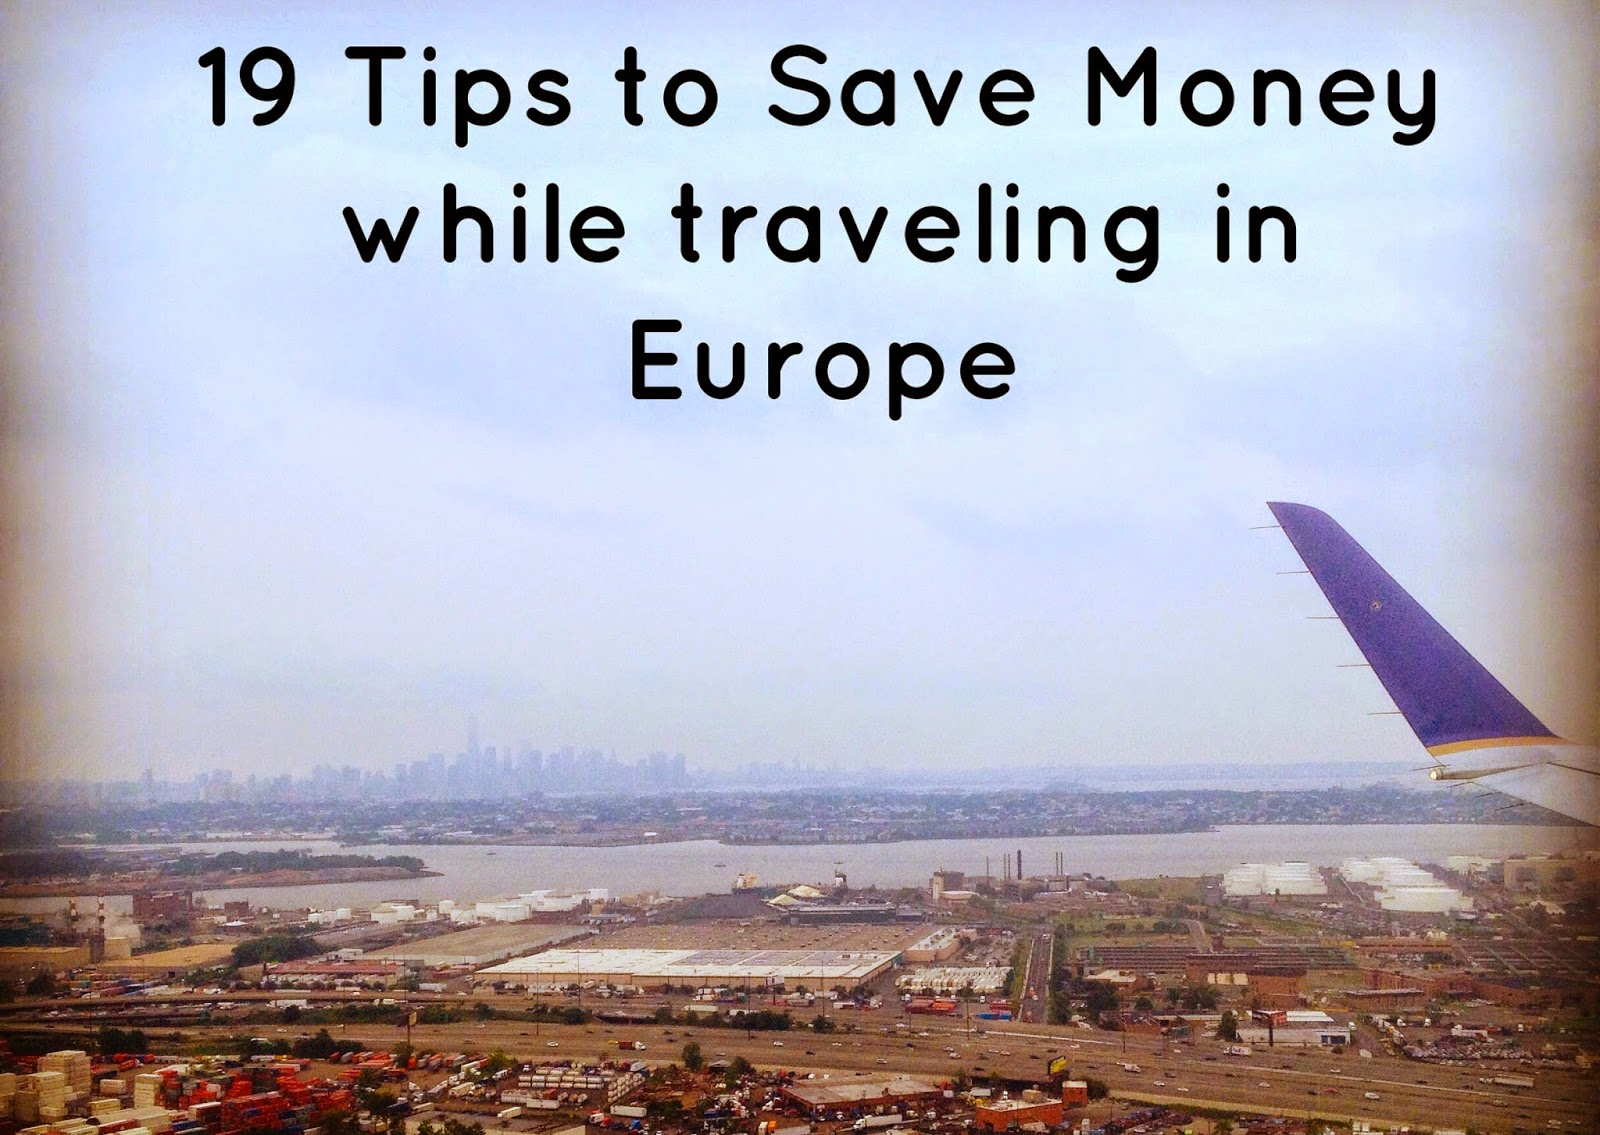 travel tips to save money in Europe